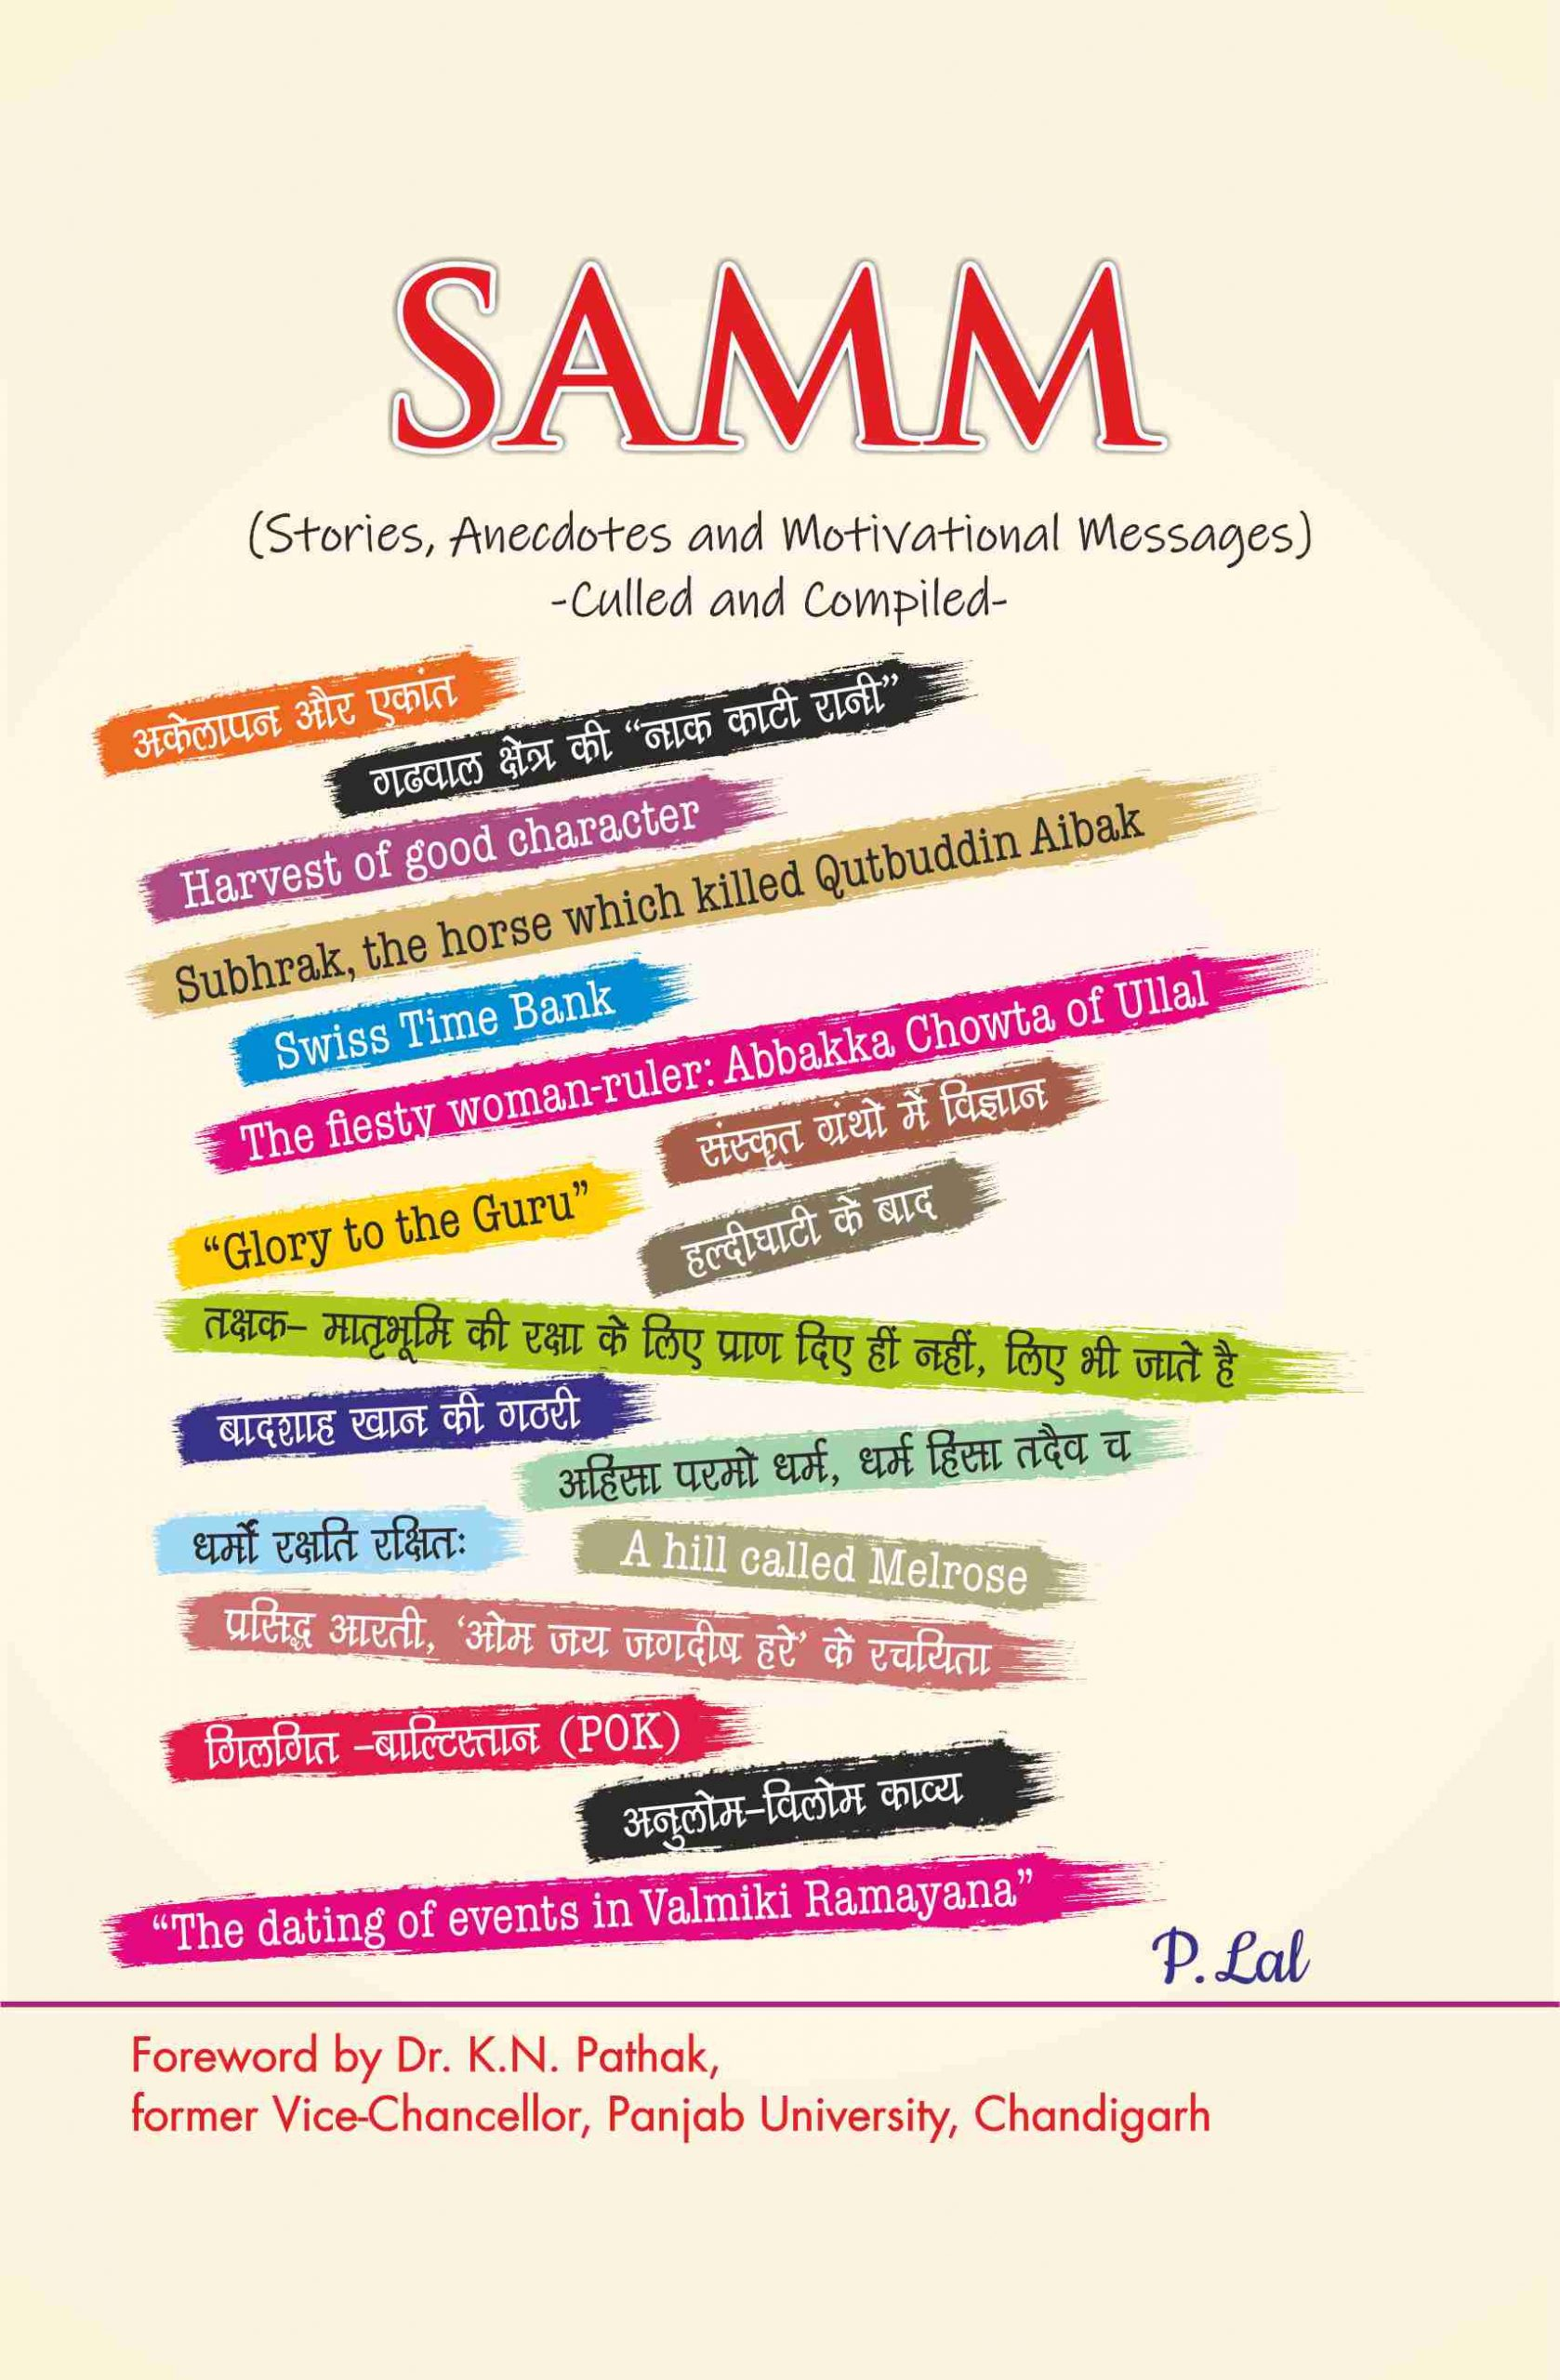 SAMM(Stories, Anecdotes and Motivational Messages- culled and compiled by P.Lal, (Foreword by Dr K N Pathak )